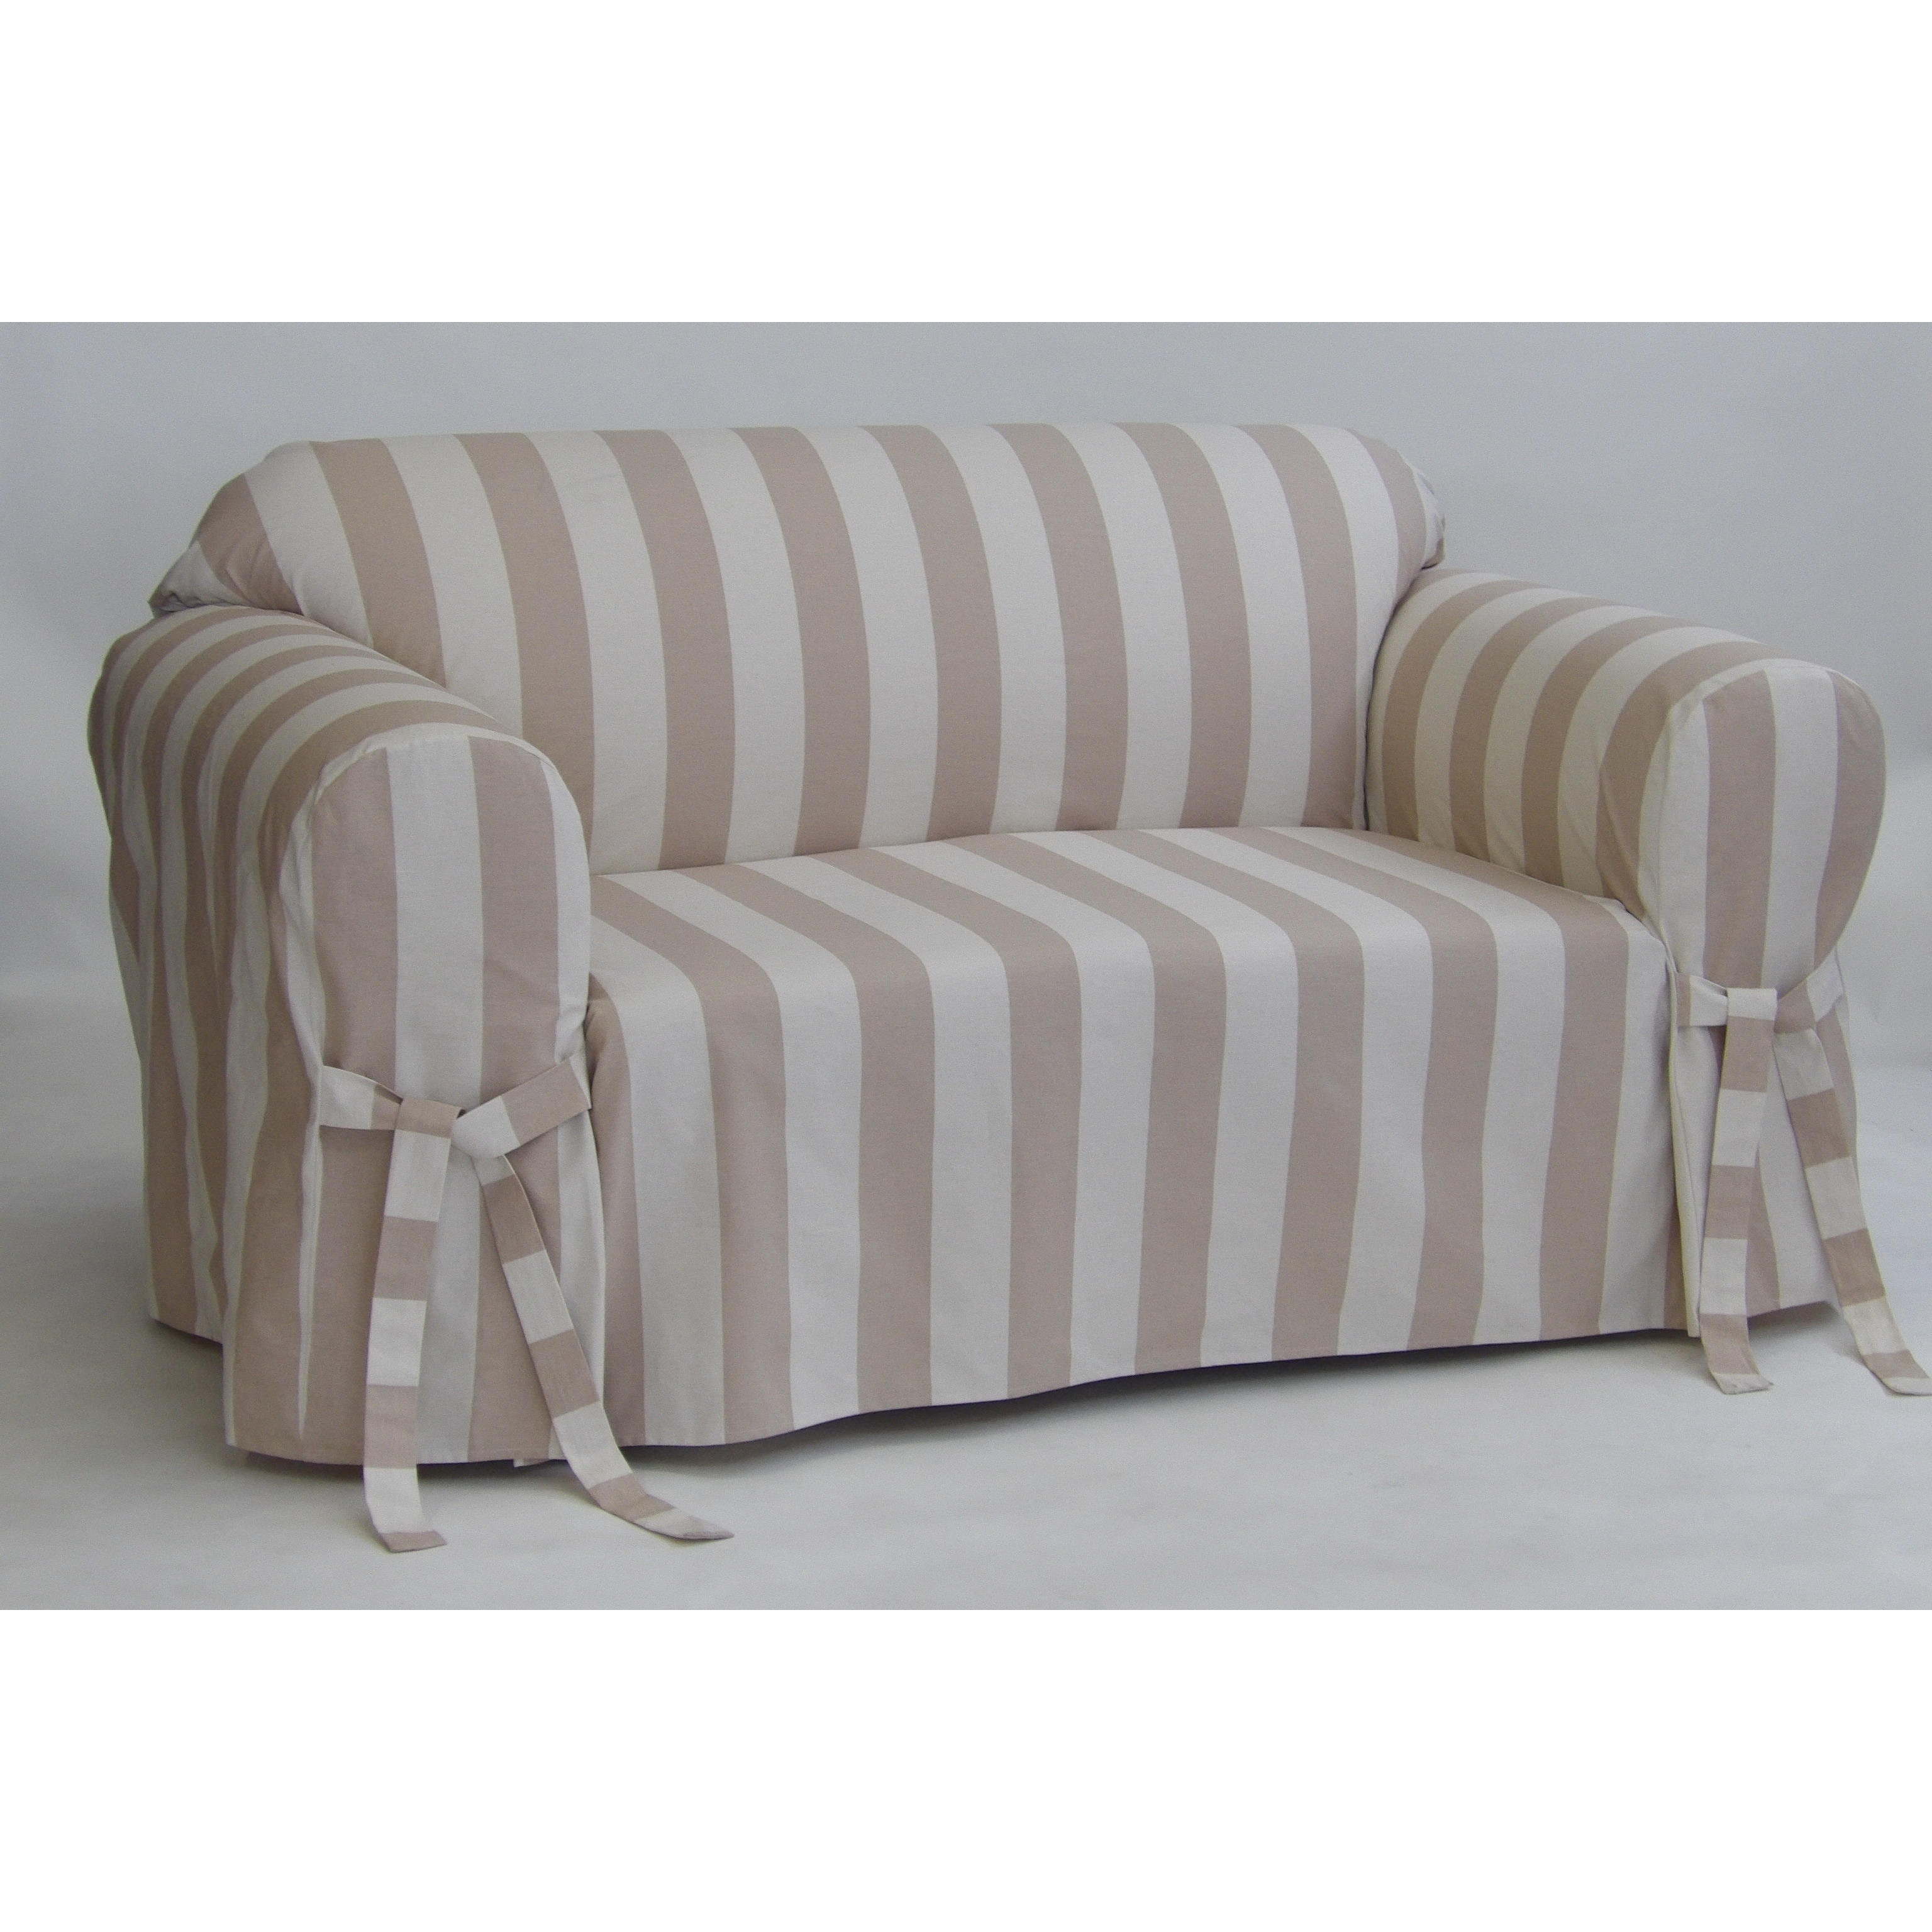 sofa inspirational furniture new chaise cover lovely outdoor loveseat lounge love patio slipcovers pleasant covers seat and of for